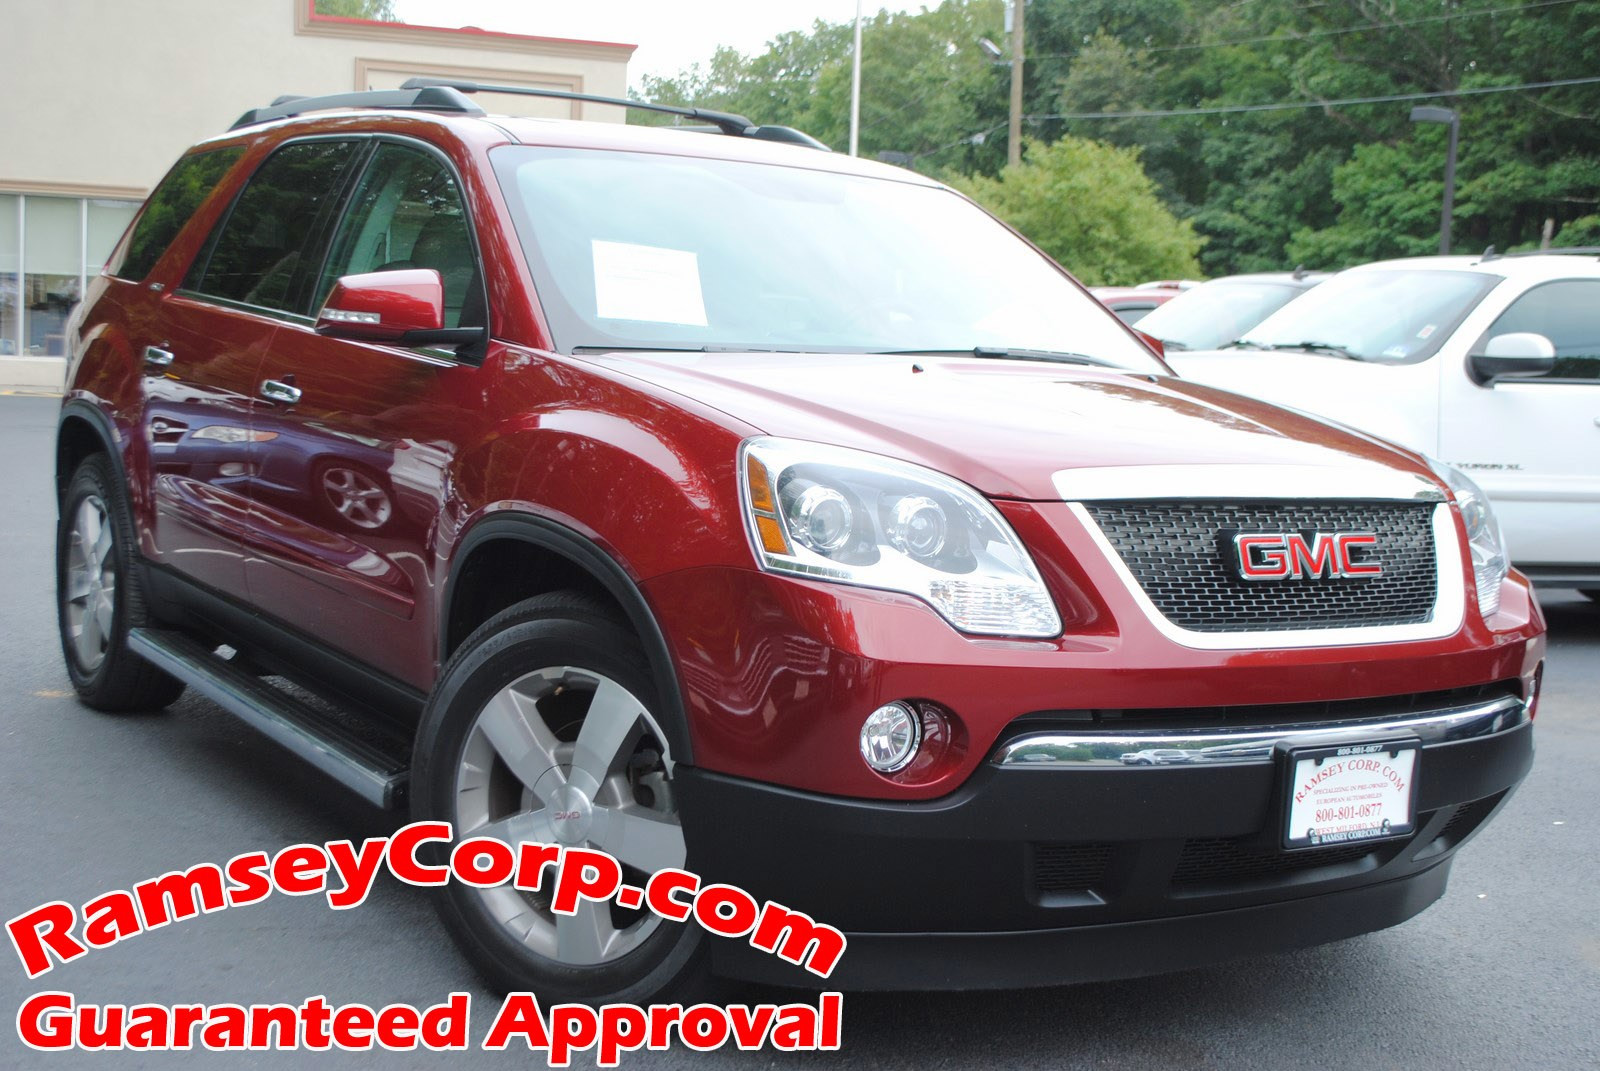 Pc Hardwood Floors Ramsey Of Used 2011 Gmc Acadia for Sale West Milford Nj In E6de83030a0e0aca388ce5907061f5b7